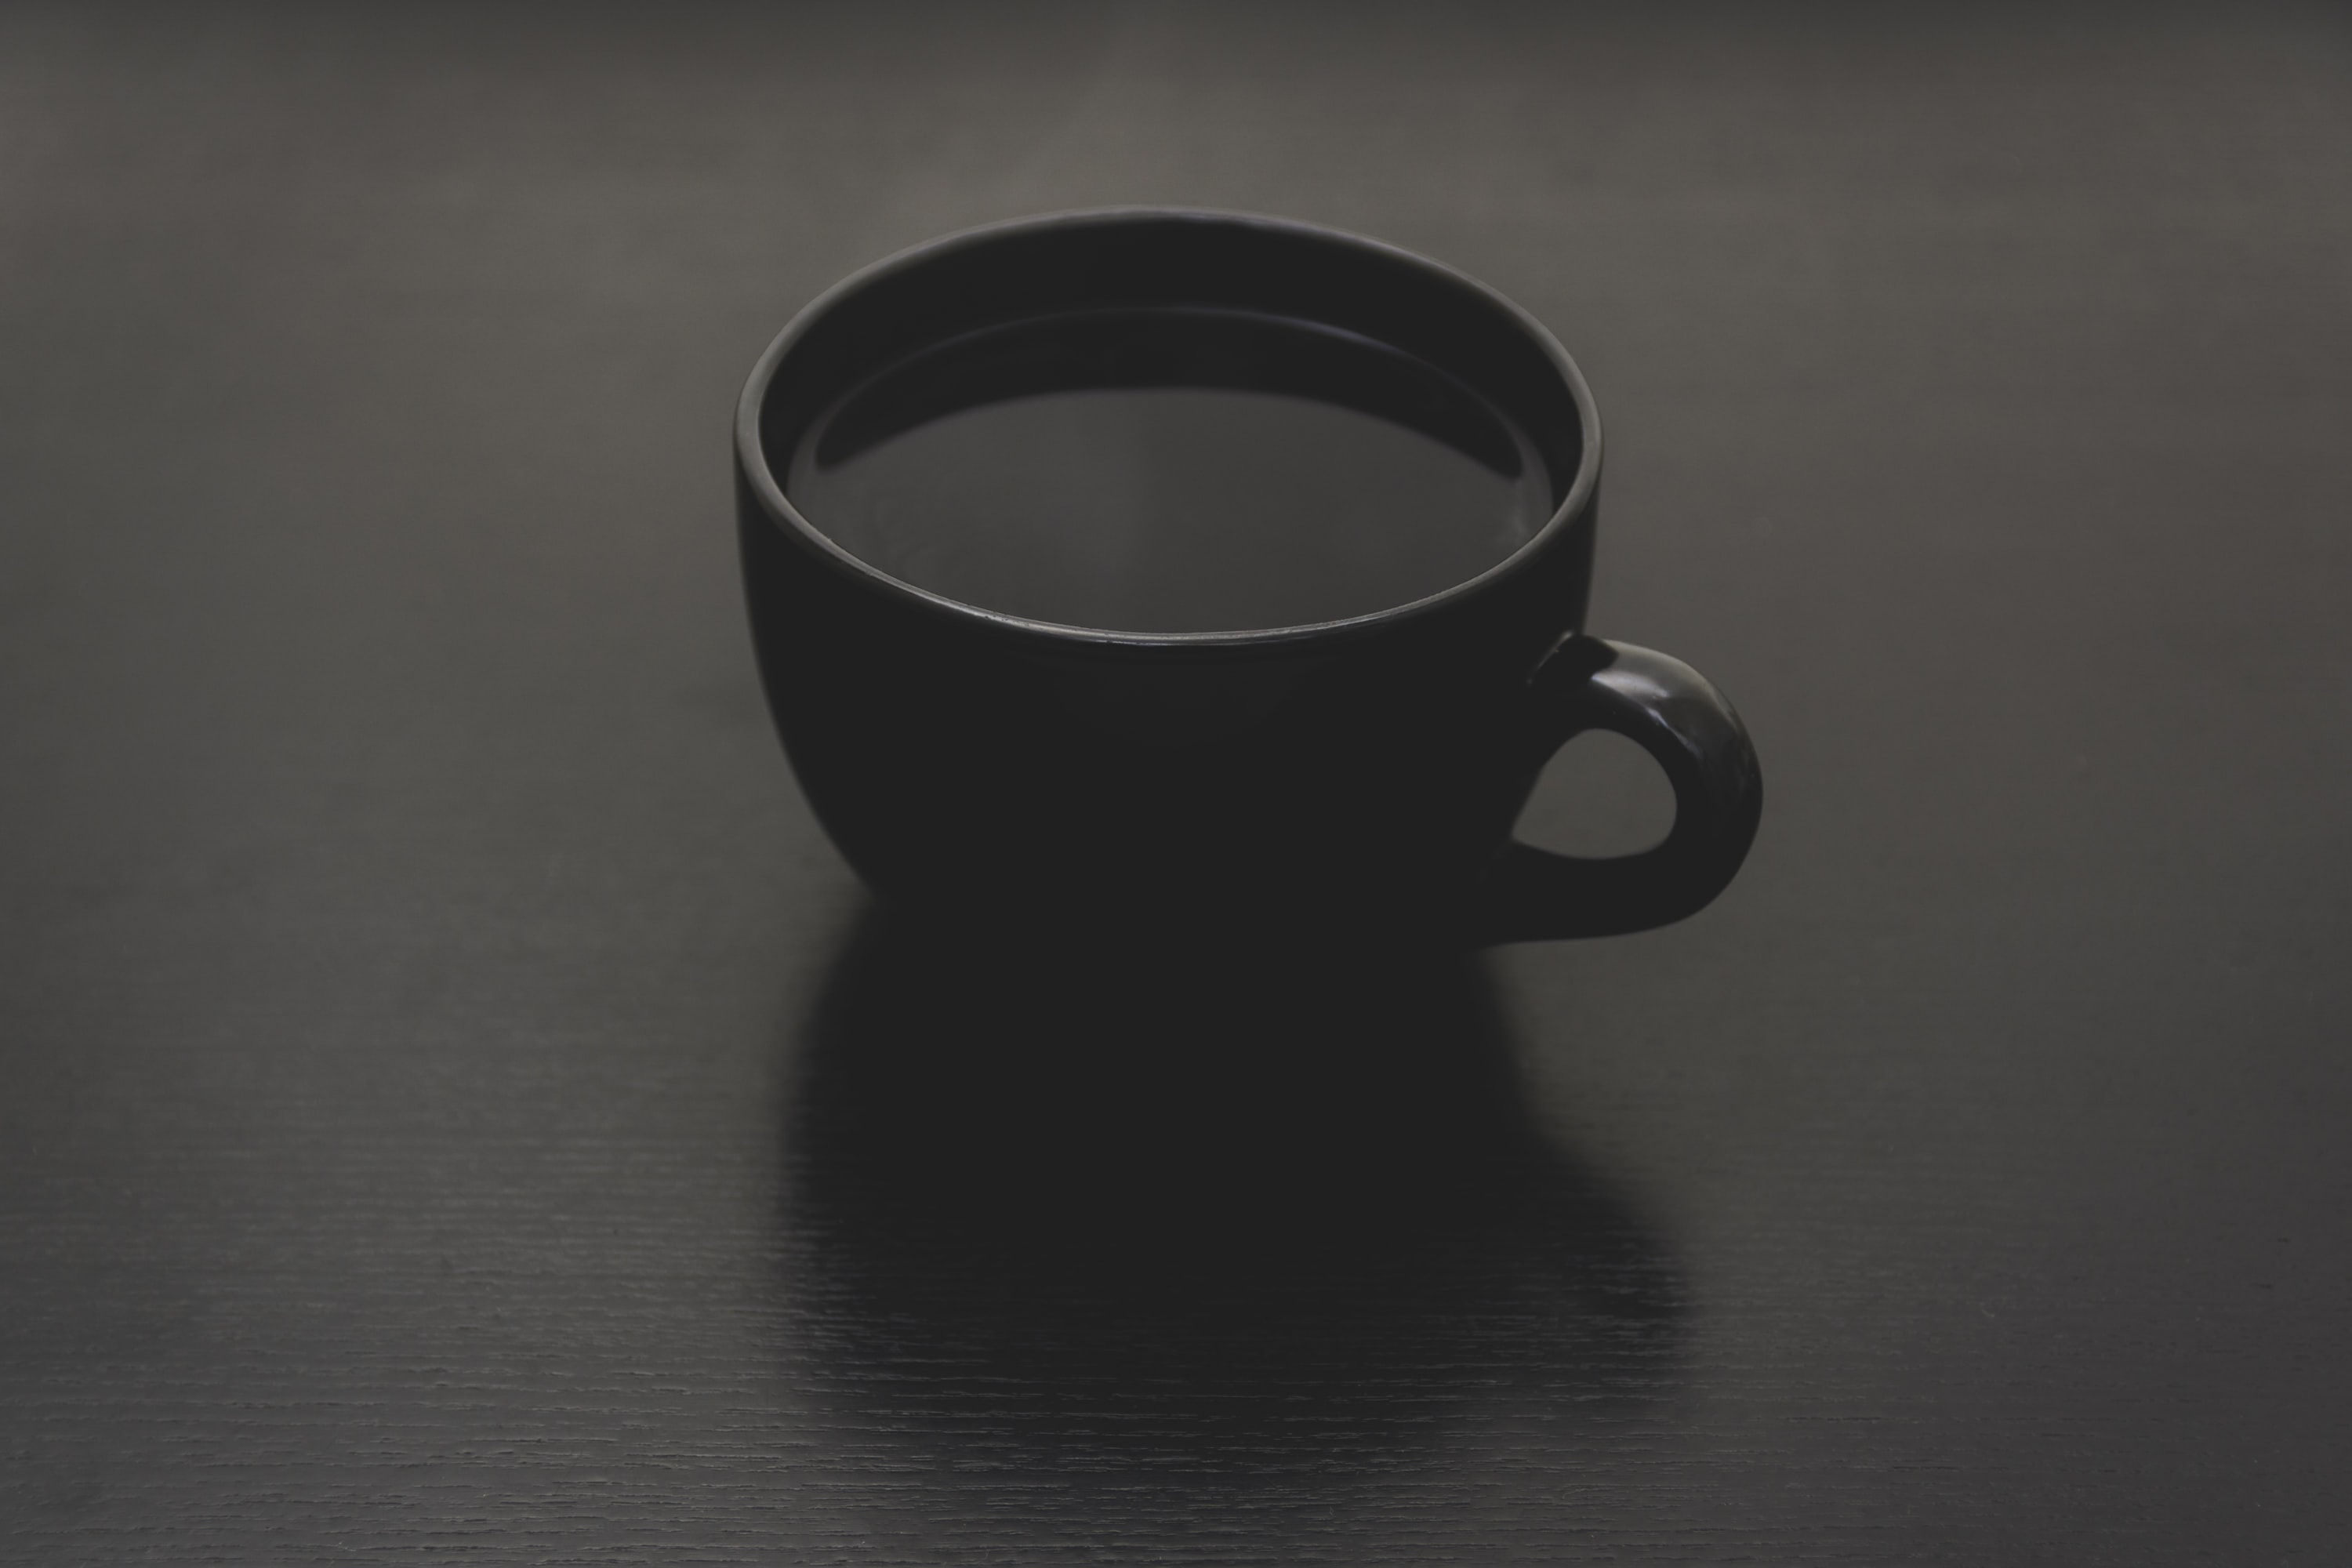 black ceramic mug with liquid close up photo